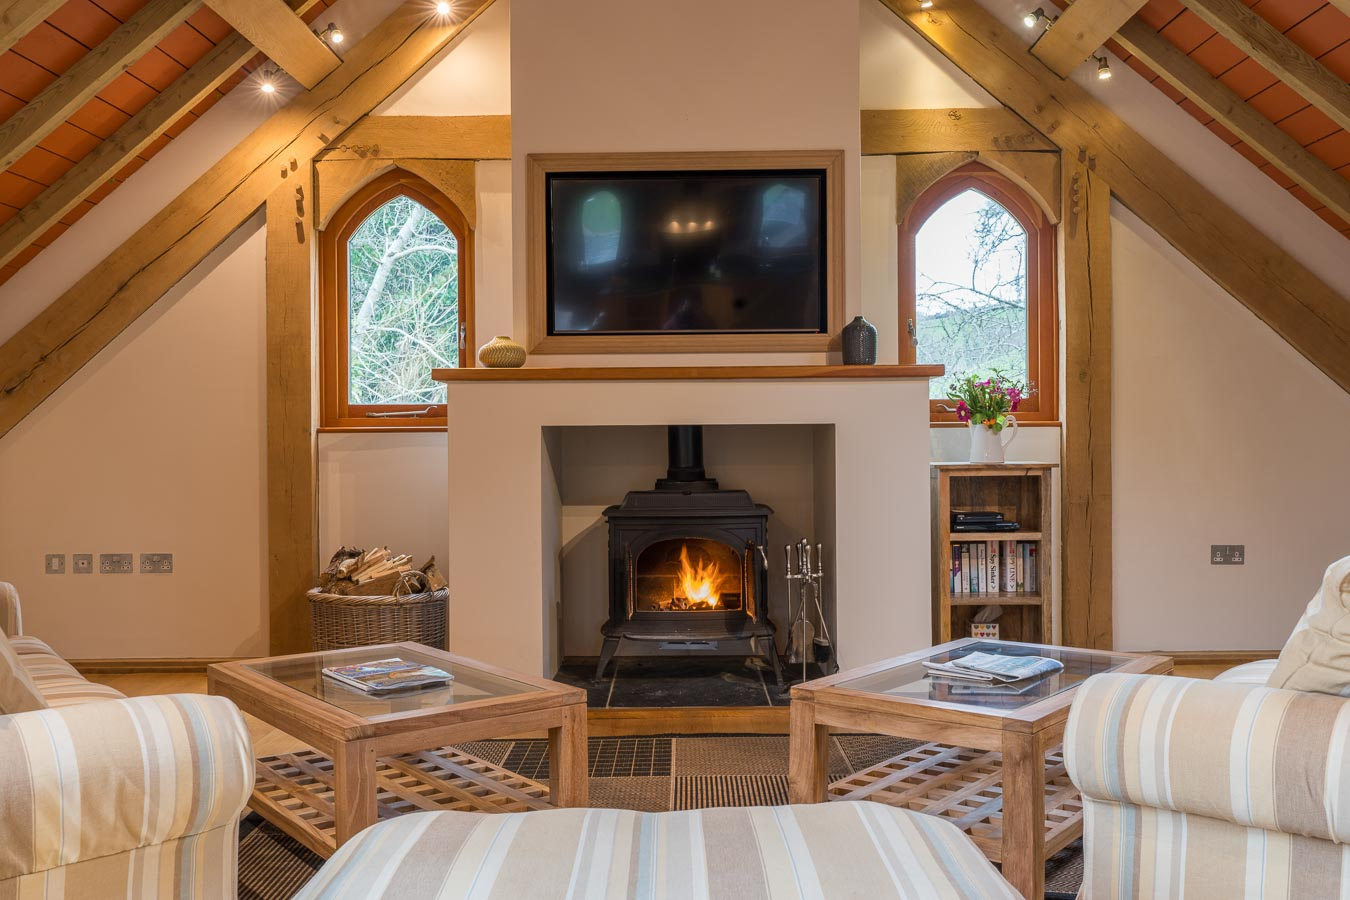 Wall mounted plasma TV and log burning stove make relaxing easy at Orchard Lodge, Flear Farm Holiday Cottage, Devon.